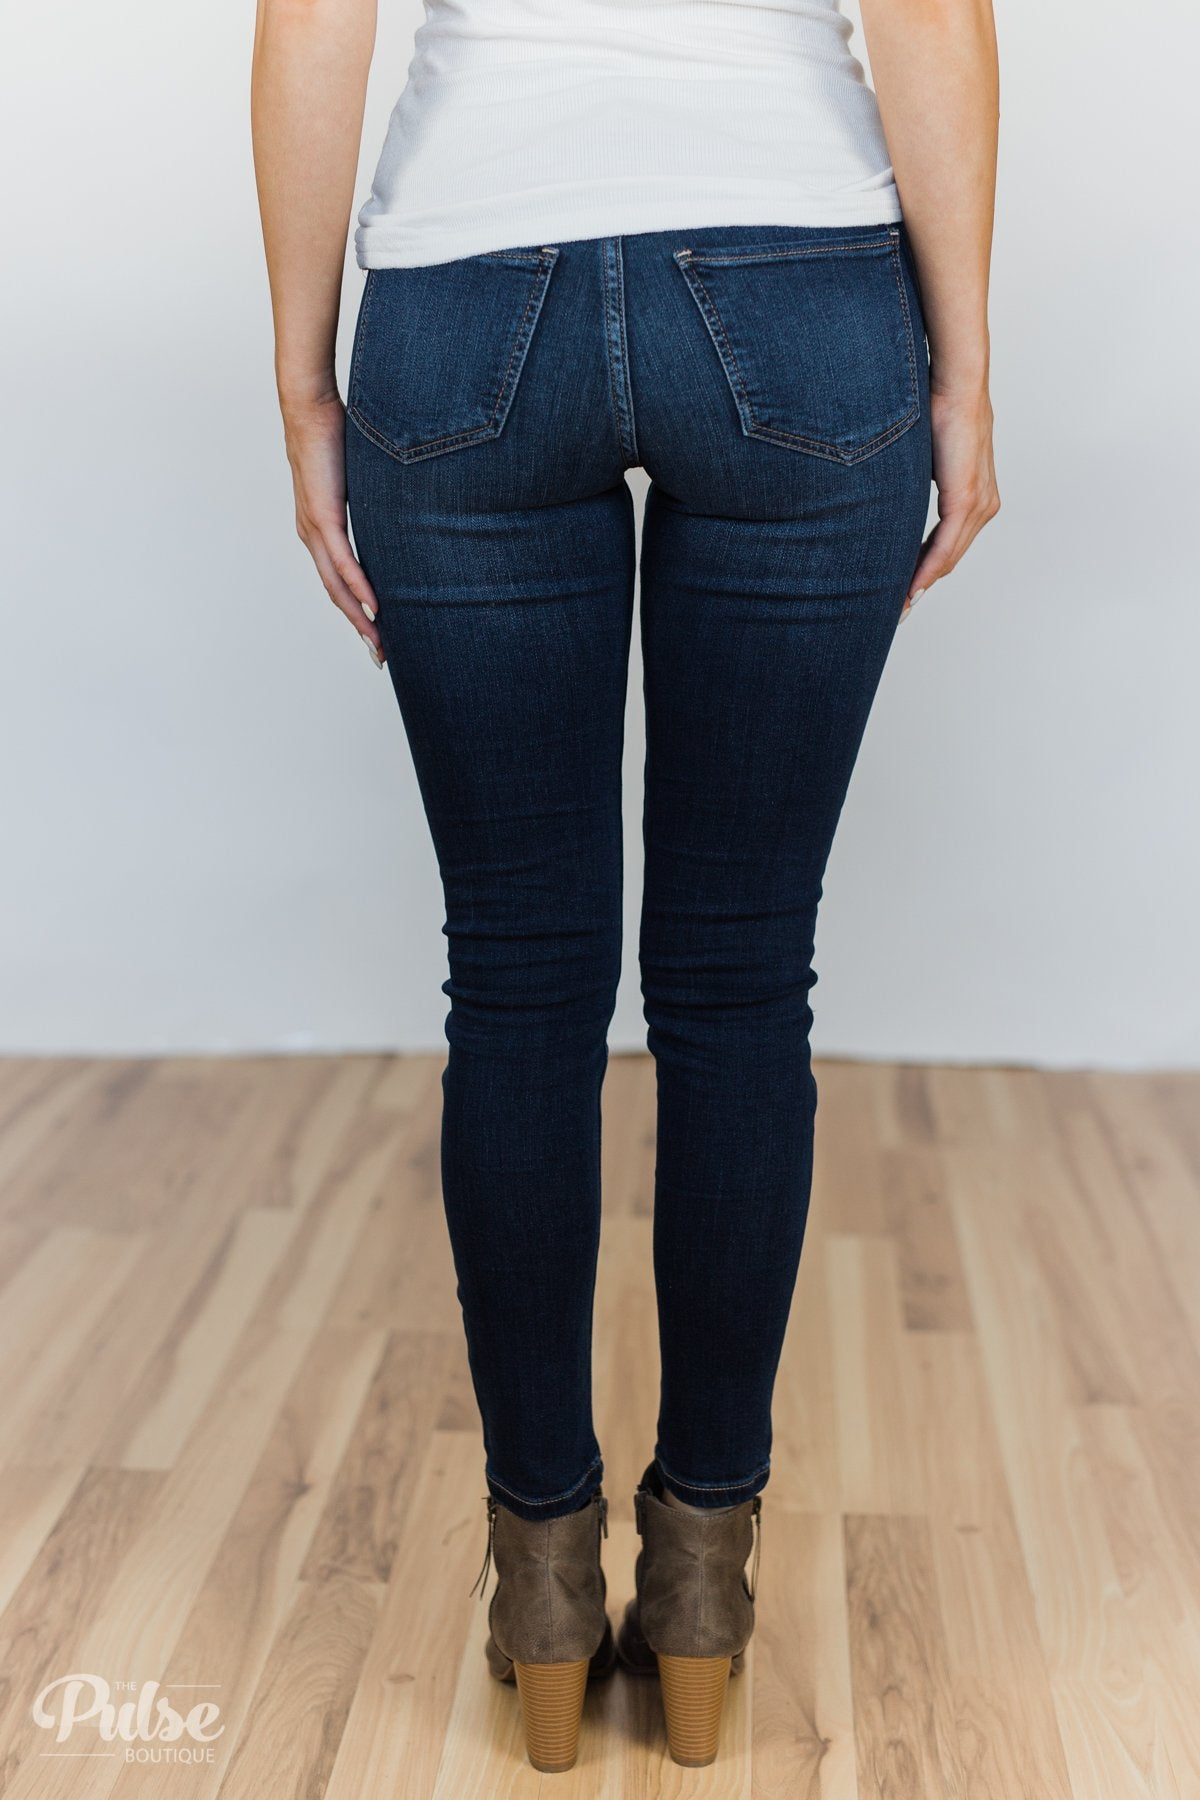 Sneak Peek Jeans- Claire Wash